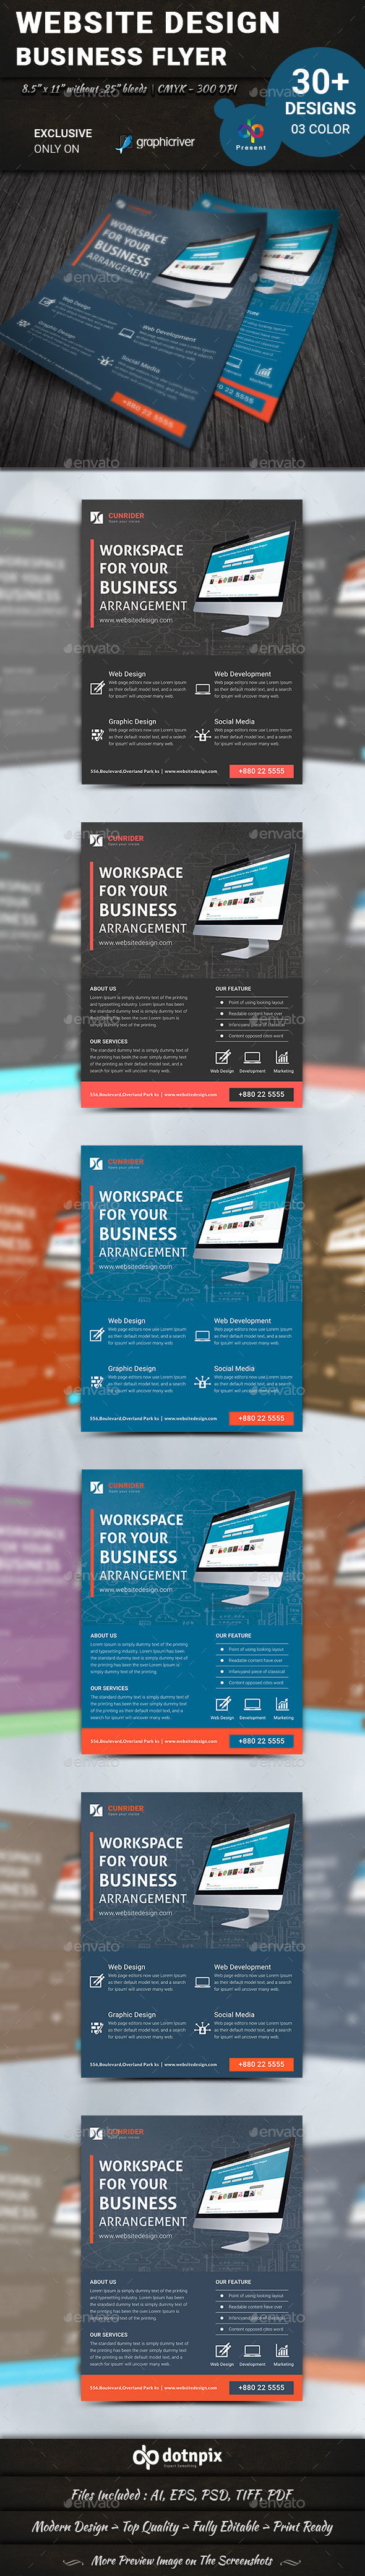 Website Design Flyer | Volume 3 - Corporate Flyers